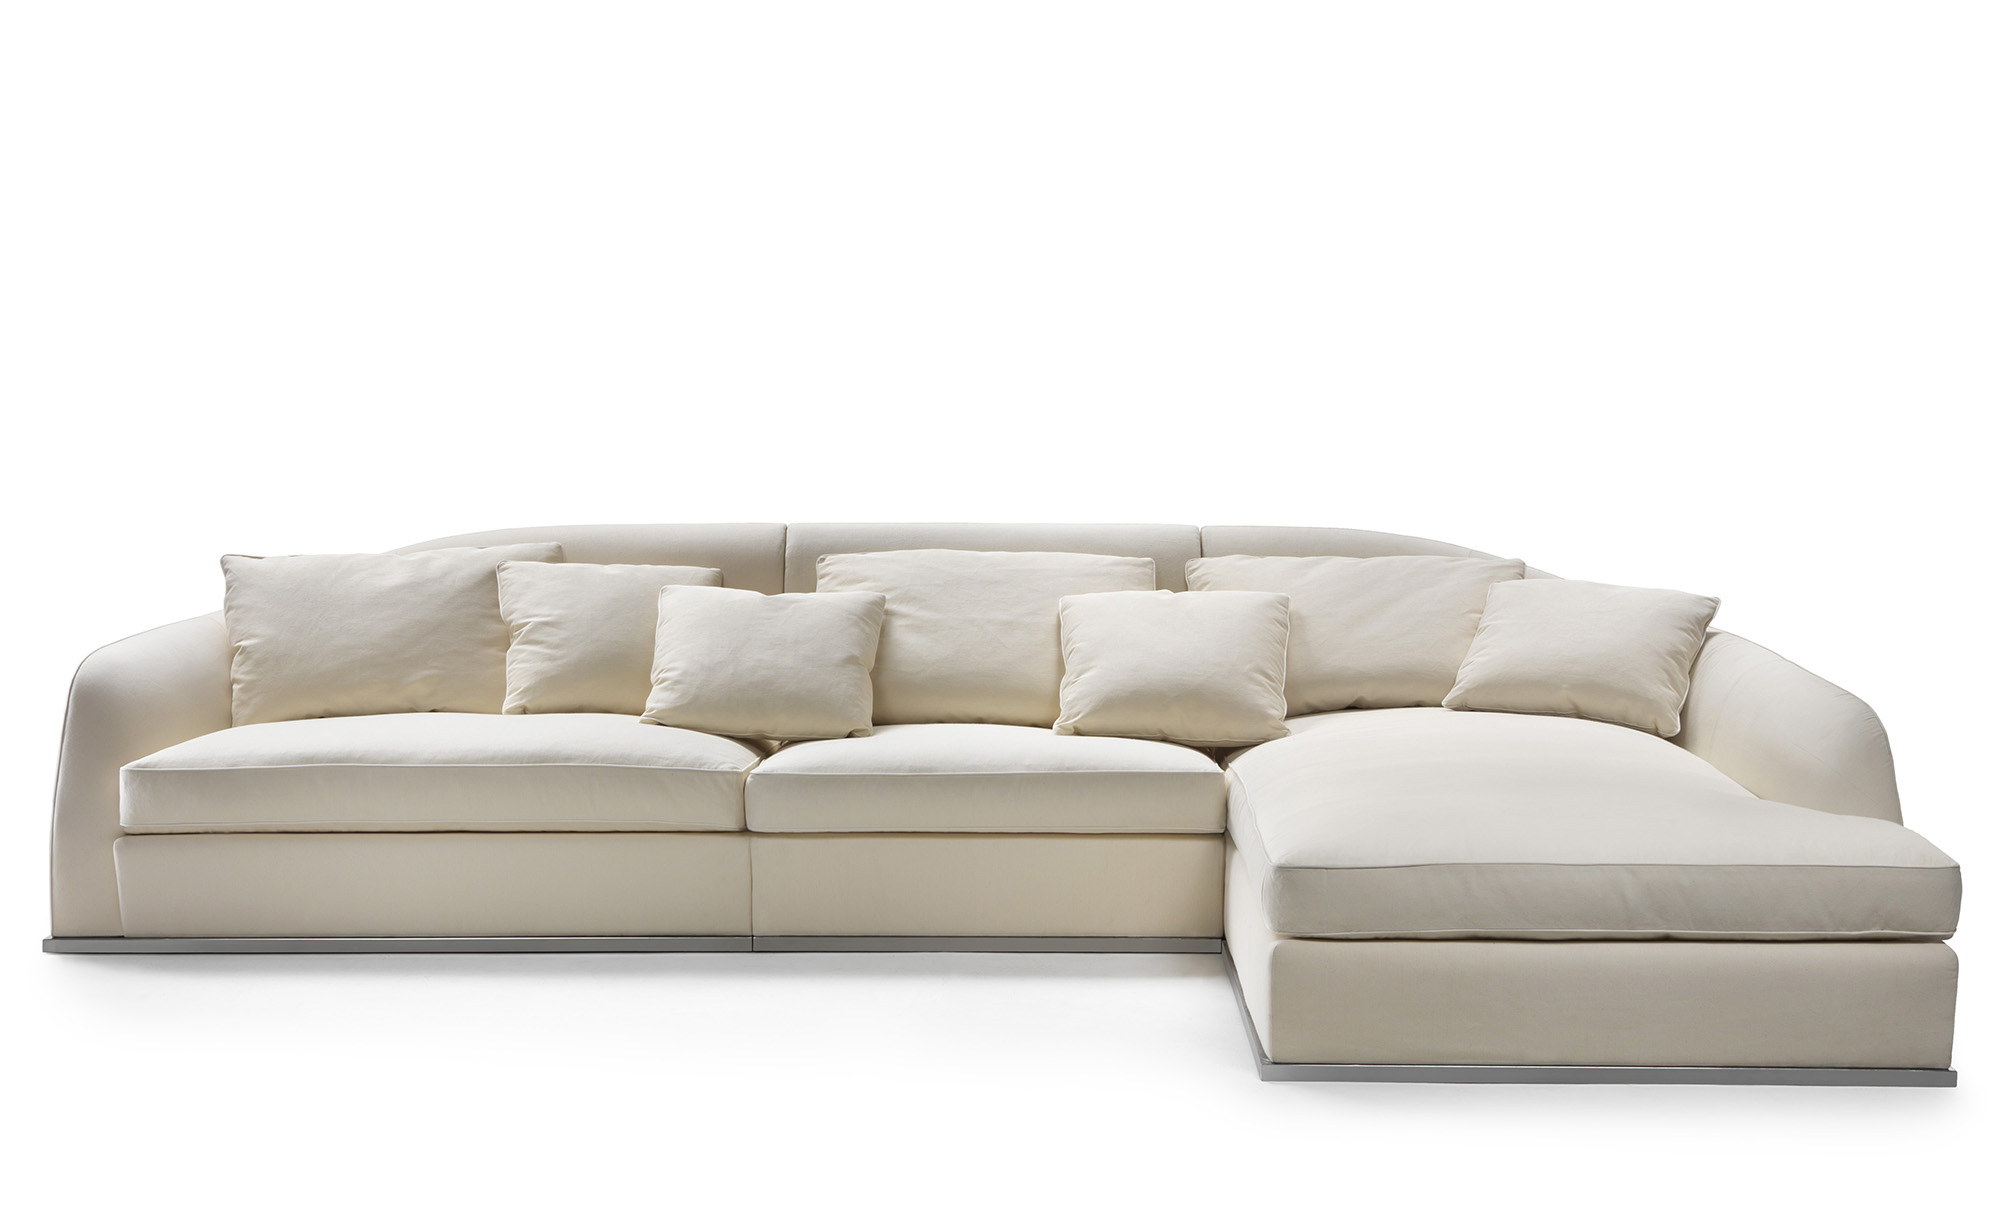 Sofas Couches Alfred Modular Sofa By Flexform Mood Fanuli Furniture